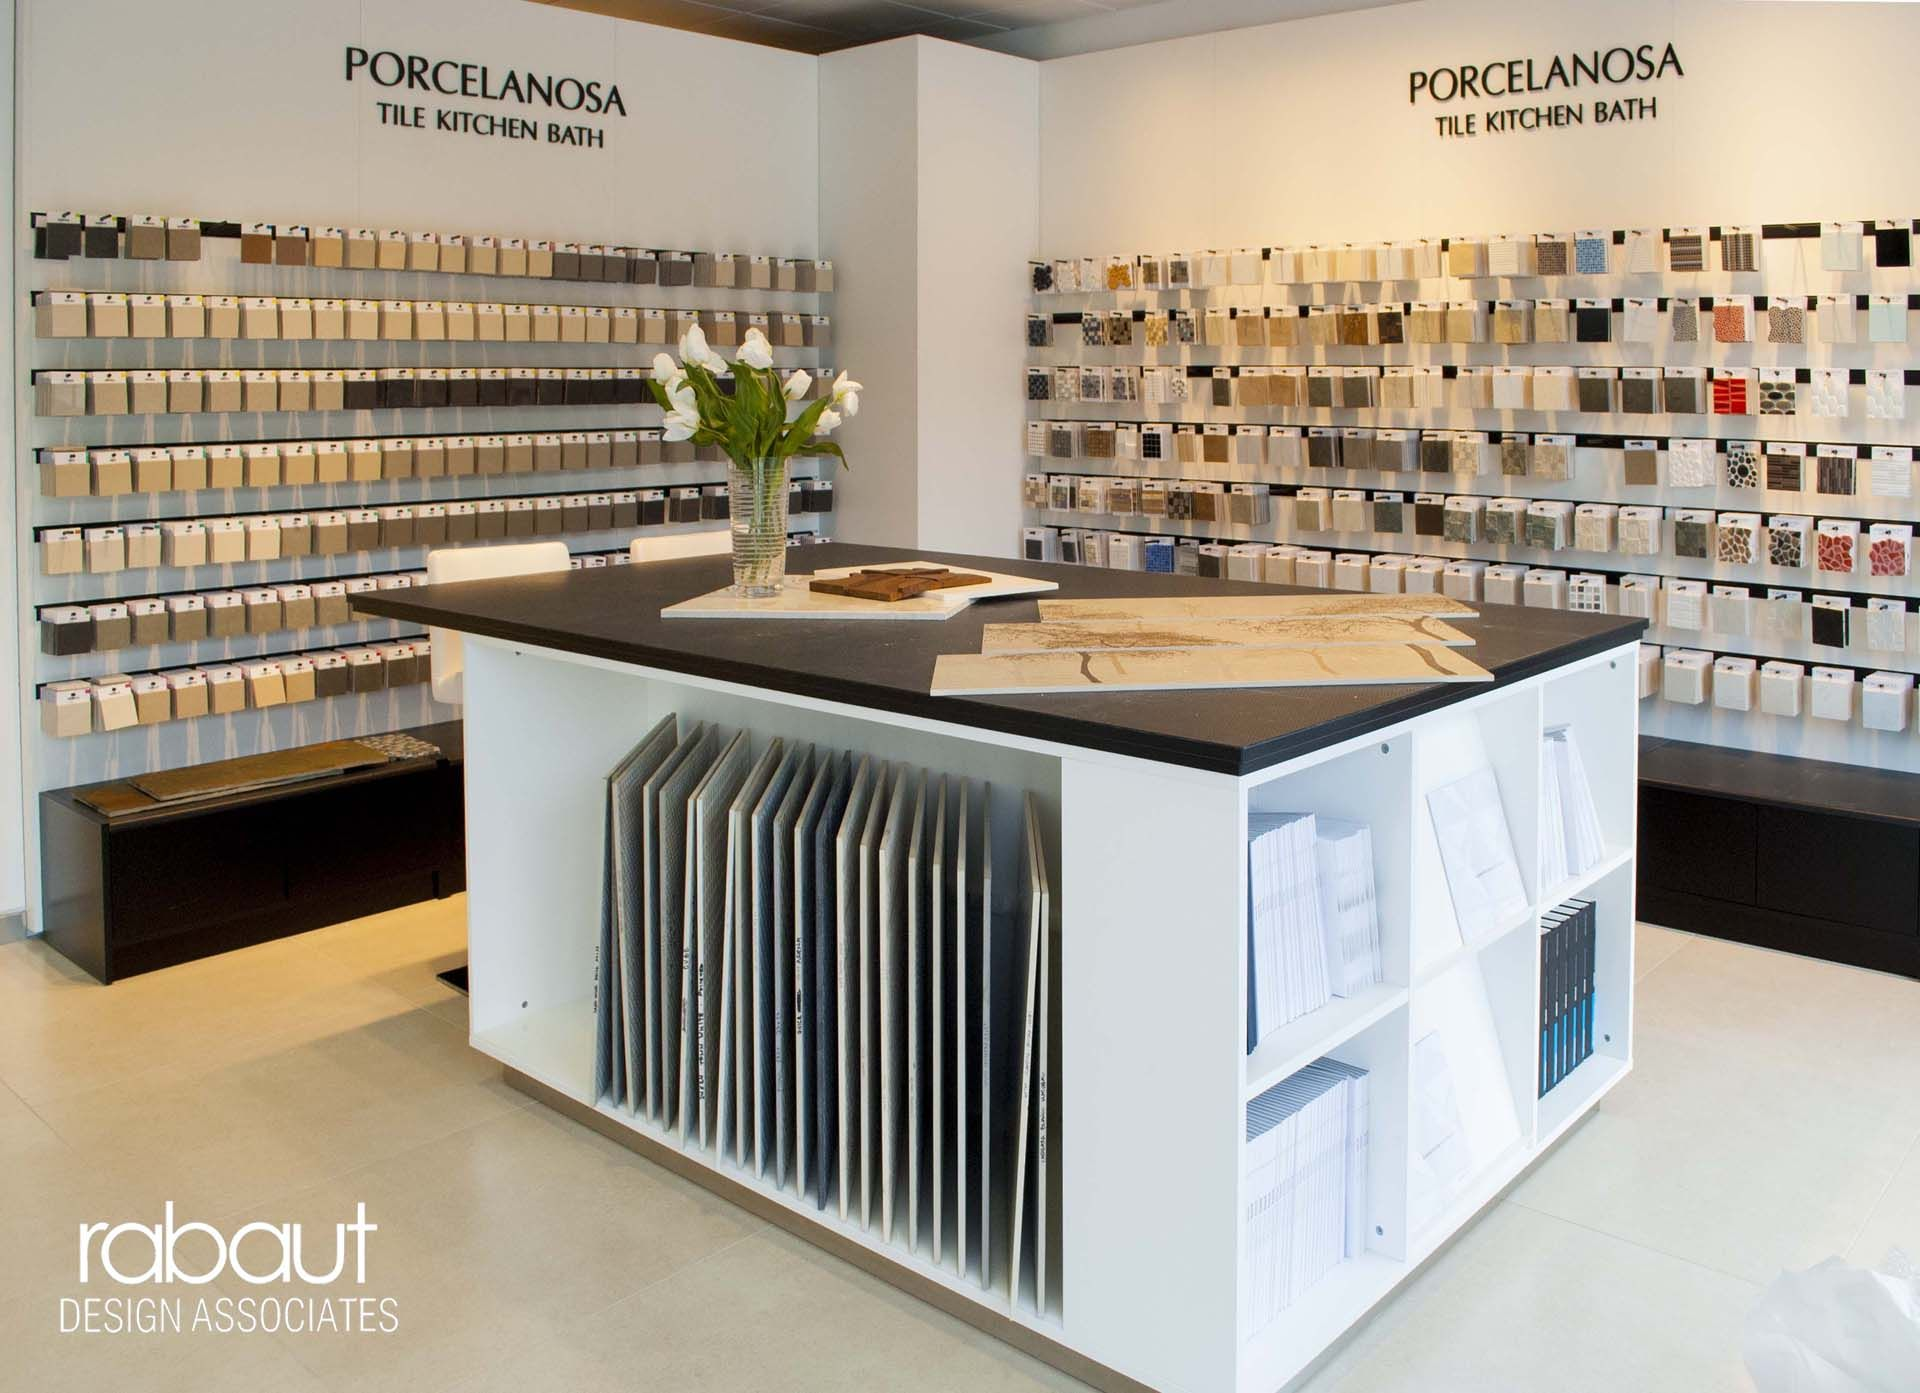 Porcelanosa Showroom By Rabaut Design Associates Porcelanosa Showroom Pinterest Showroom